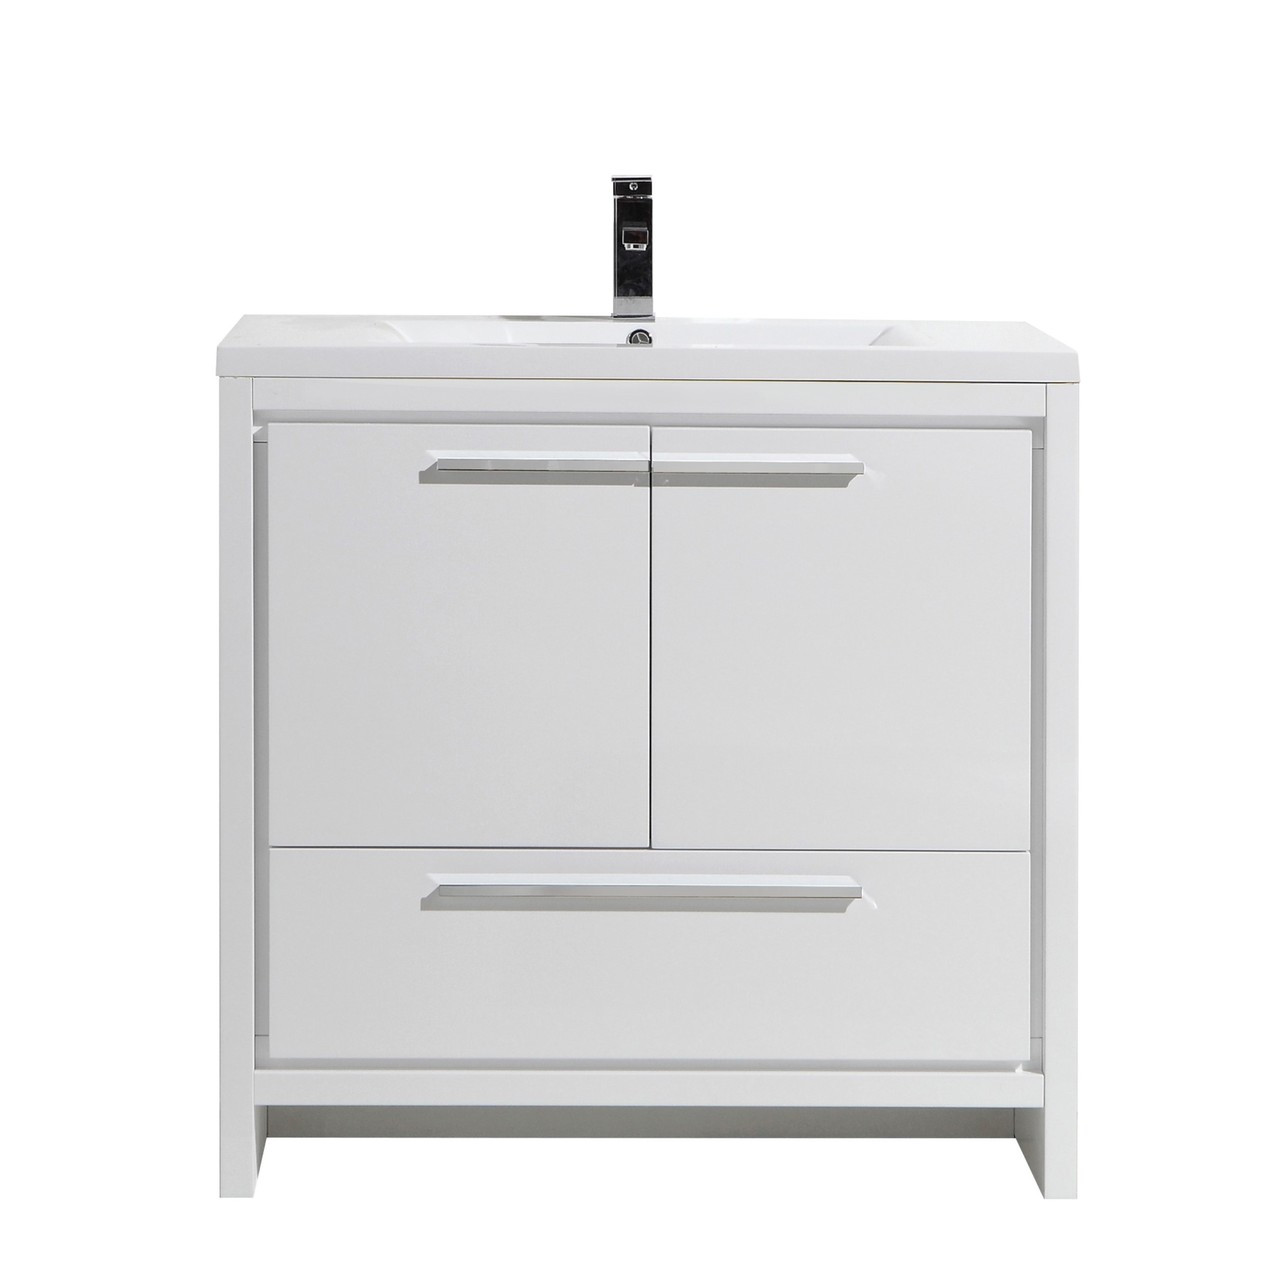 dolce 36 bath vanity with single reinforced acrylic sink